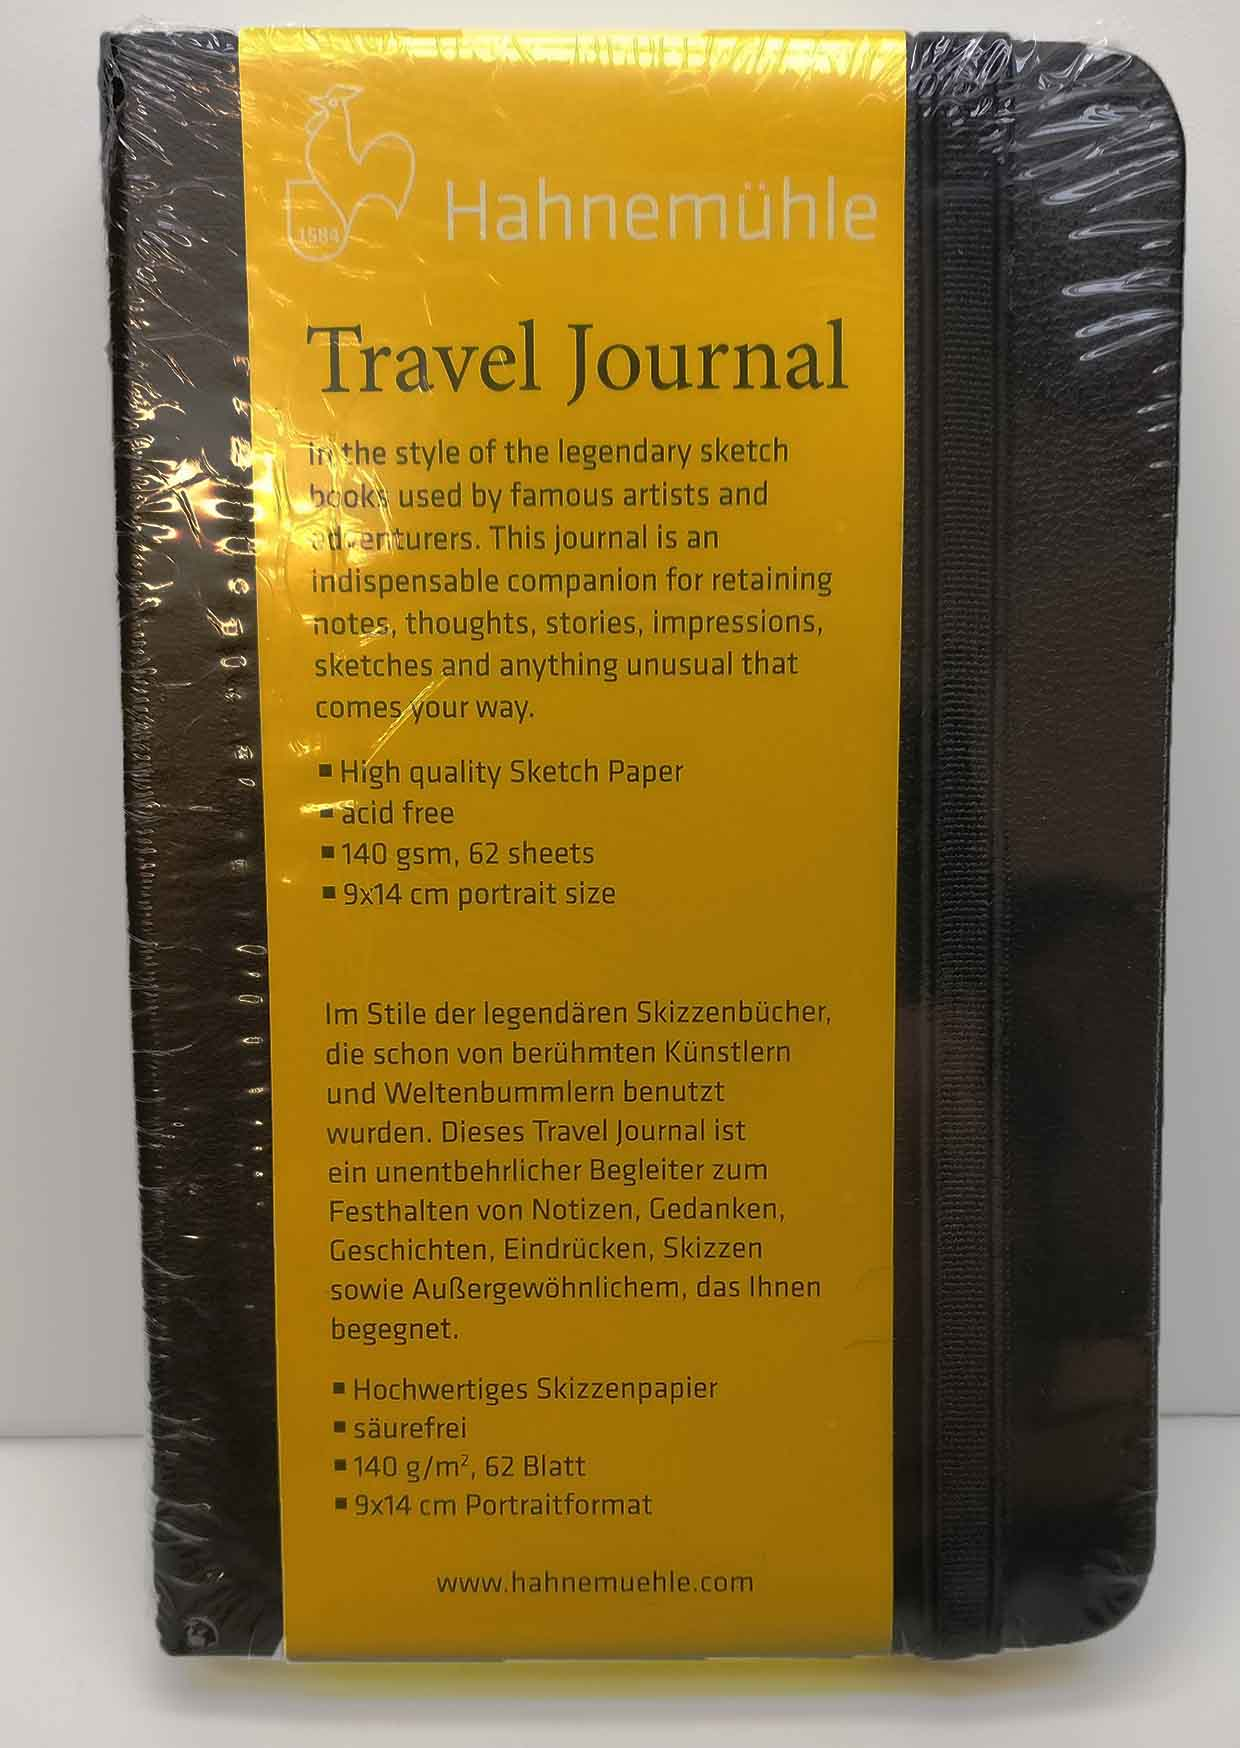 Hahnemuhle Travel Journal 9cm X 14cm 140gsm 62 sheets - Portrait